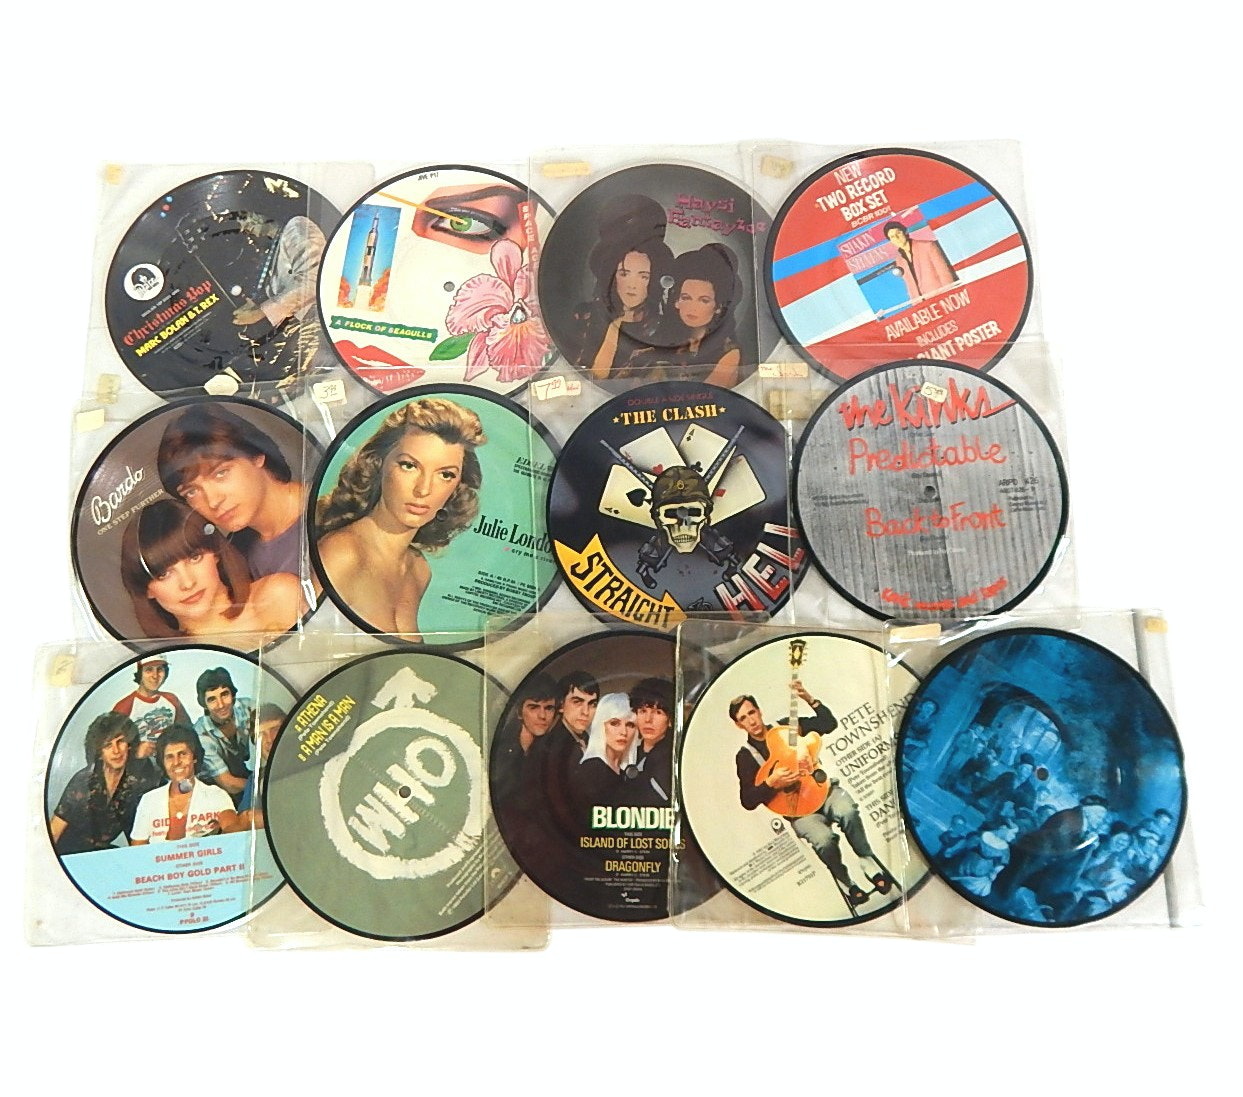 1980s 45 RPM Picture Discs with Pete Townshend, Blondie, The Clash, Who, More